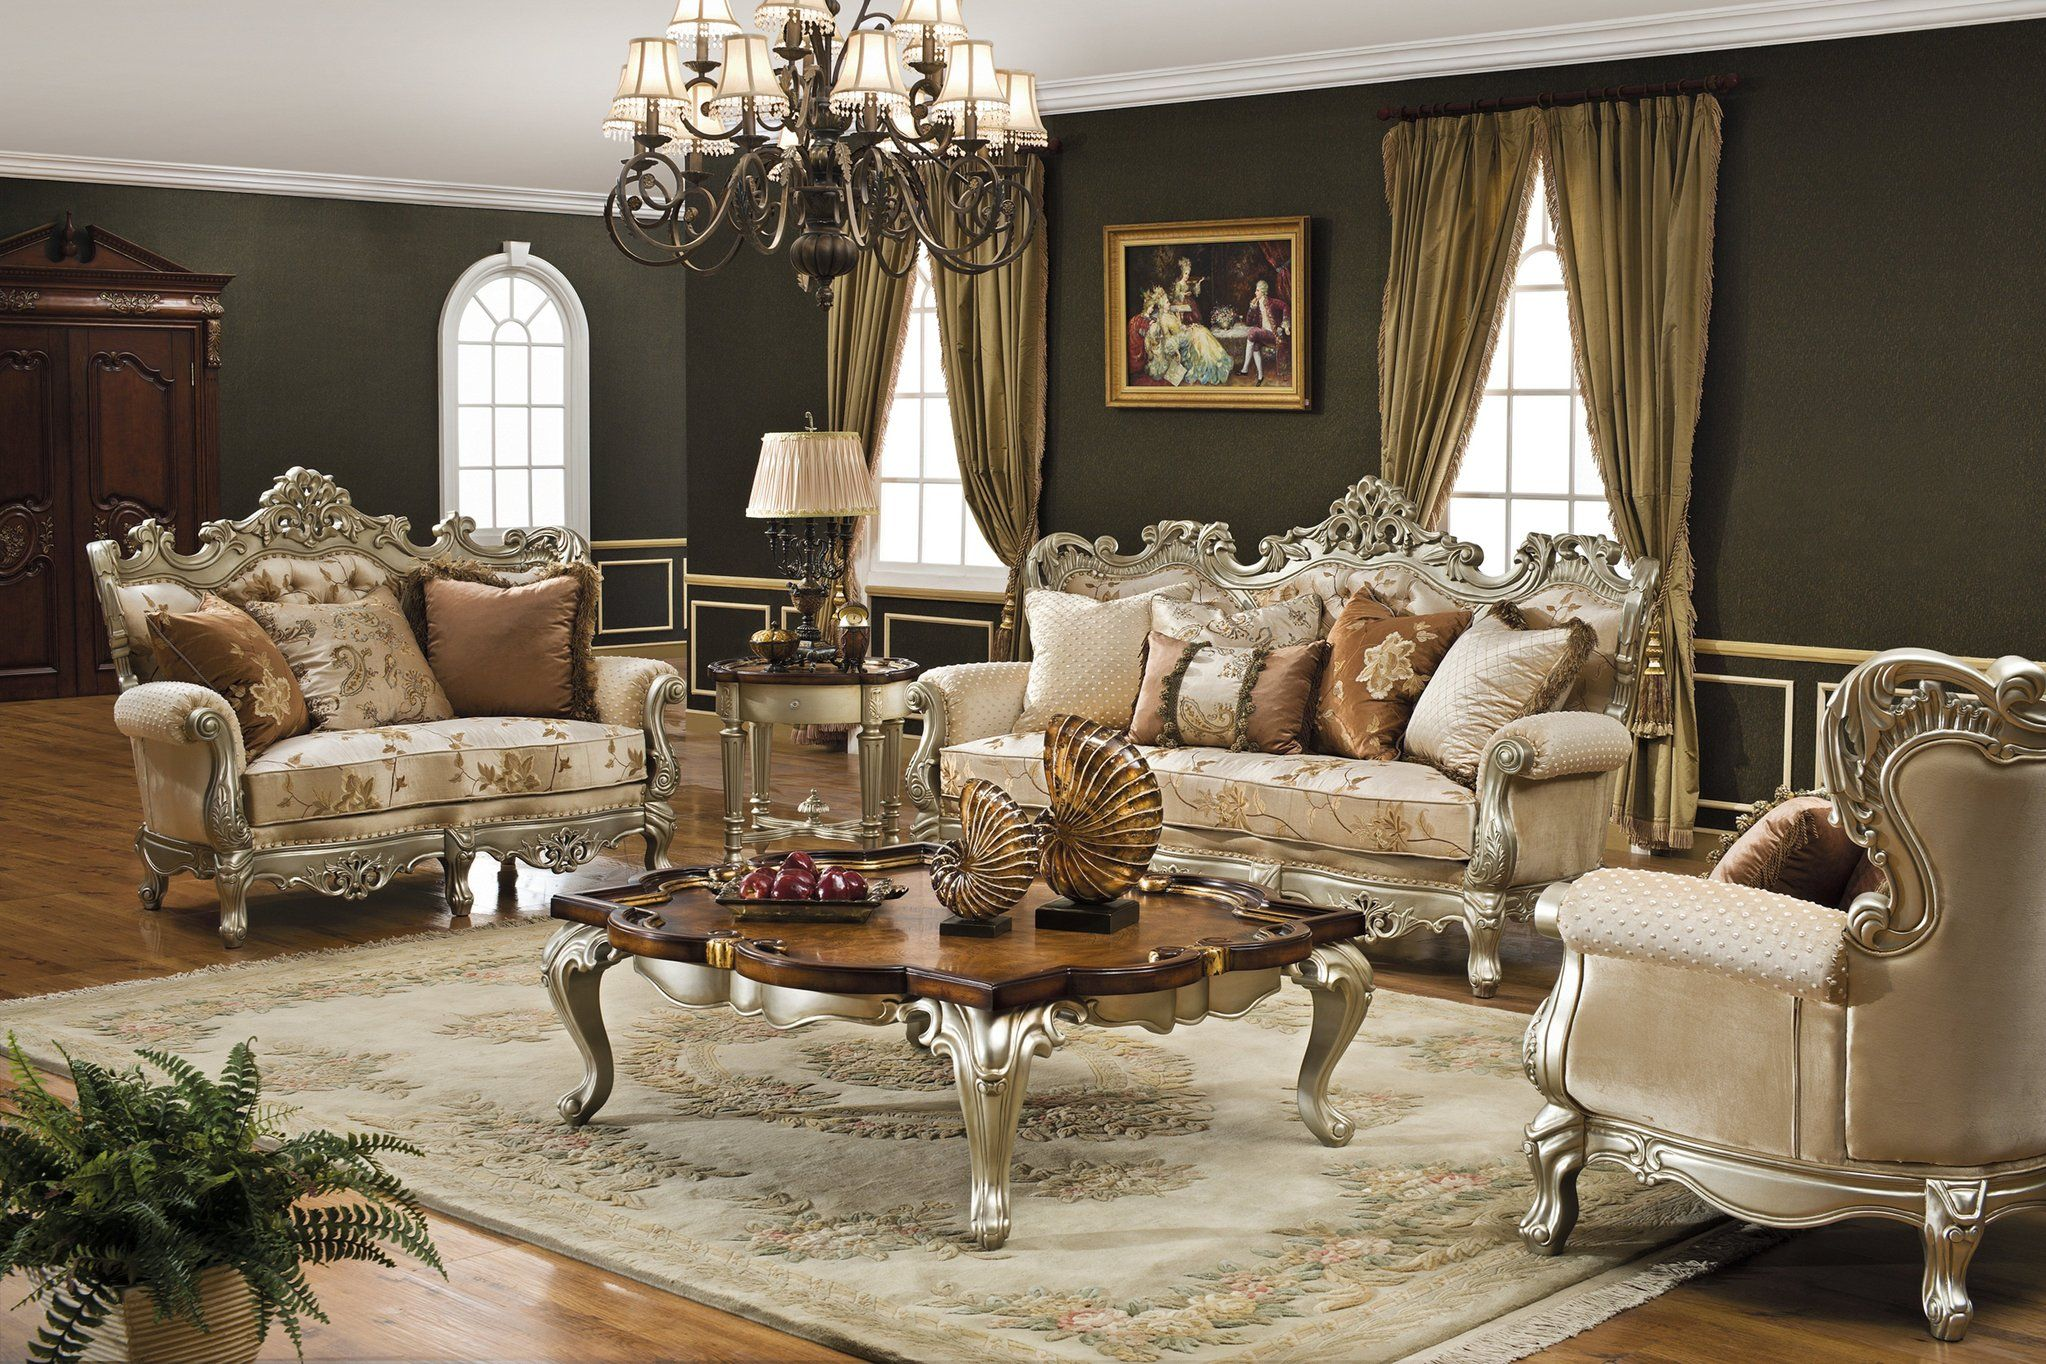 Elegant Living Room Ideas Like Other Kin Elegant Is Subjective What Makes A Lounge Ele Fancy Living Rooms Luxury Furniture Living Room Antique Living Rooms